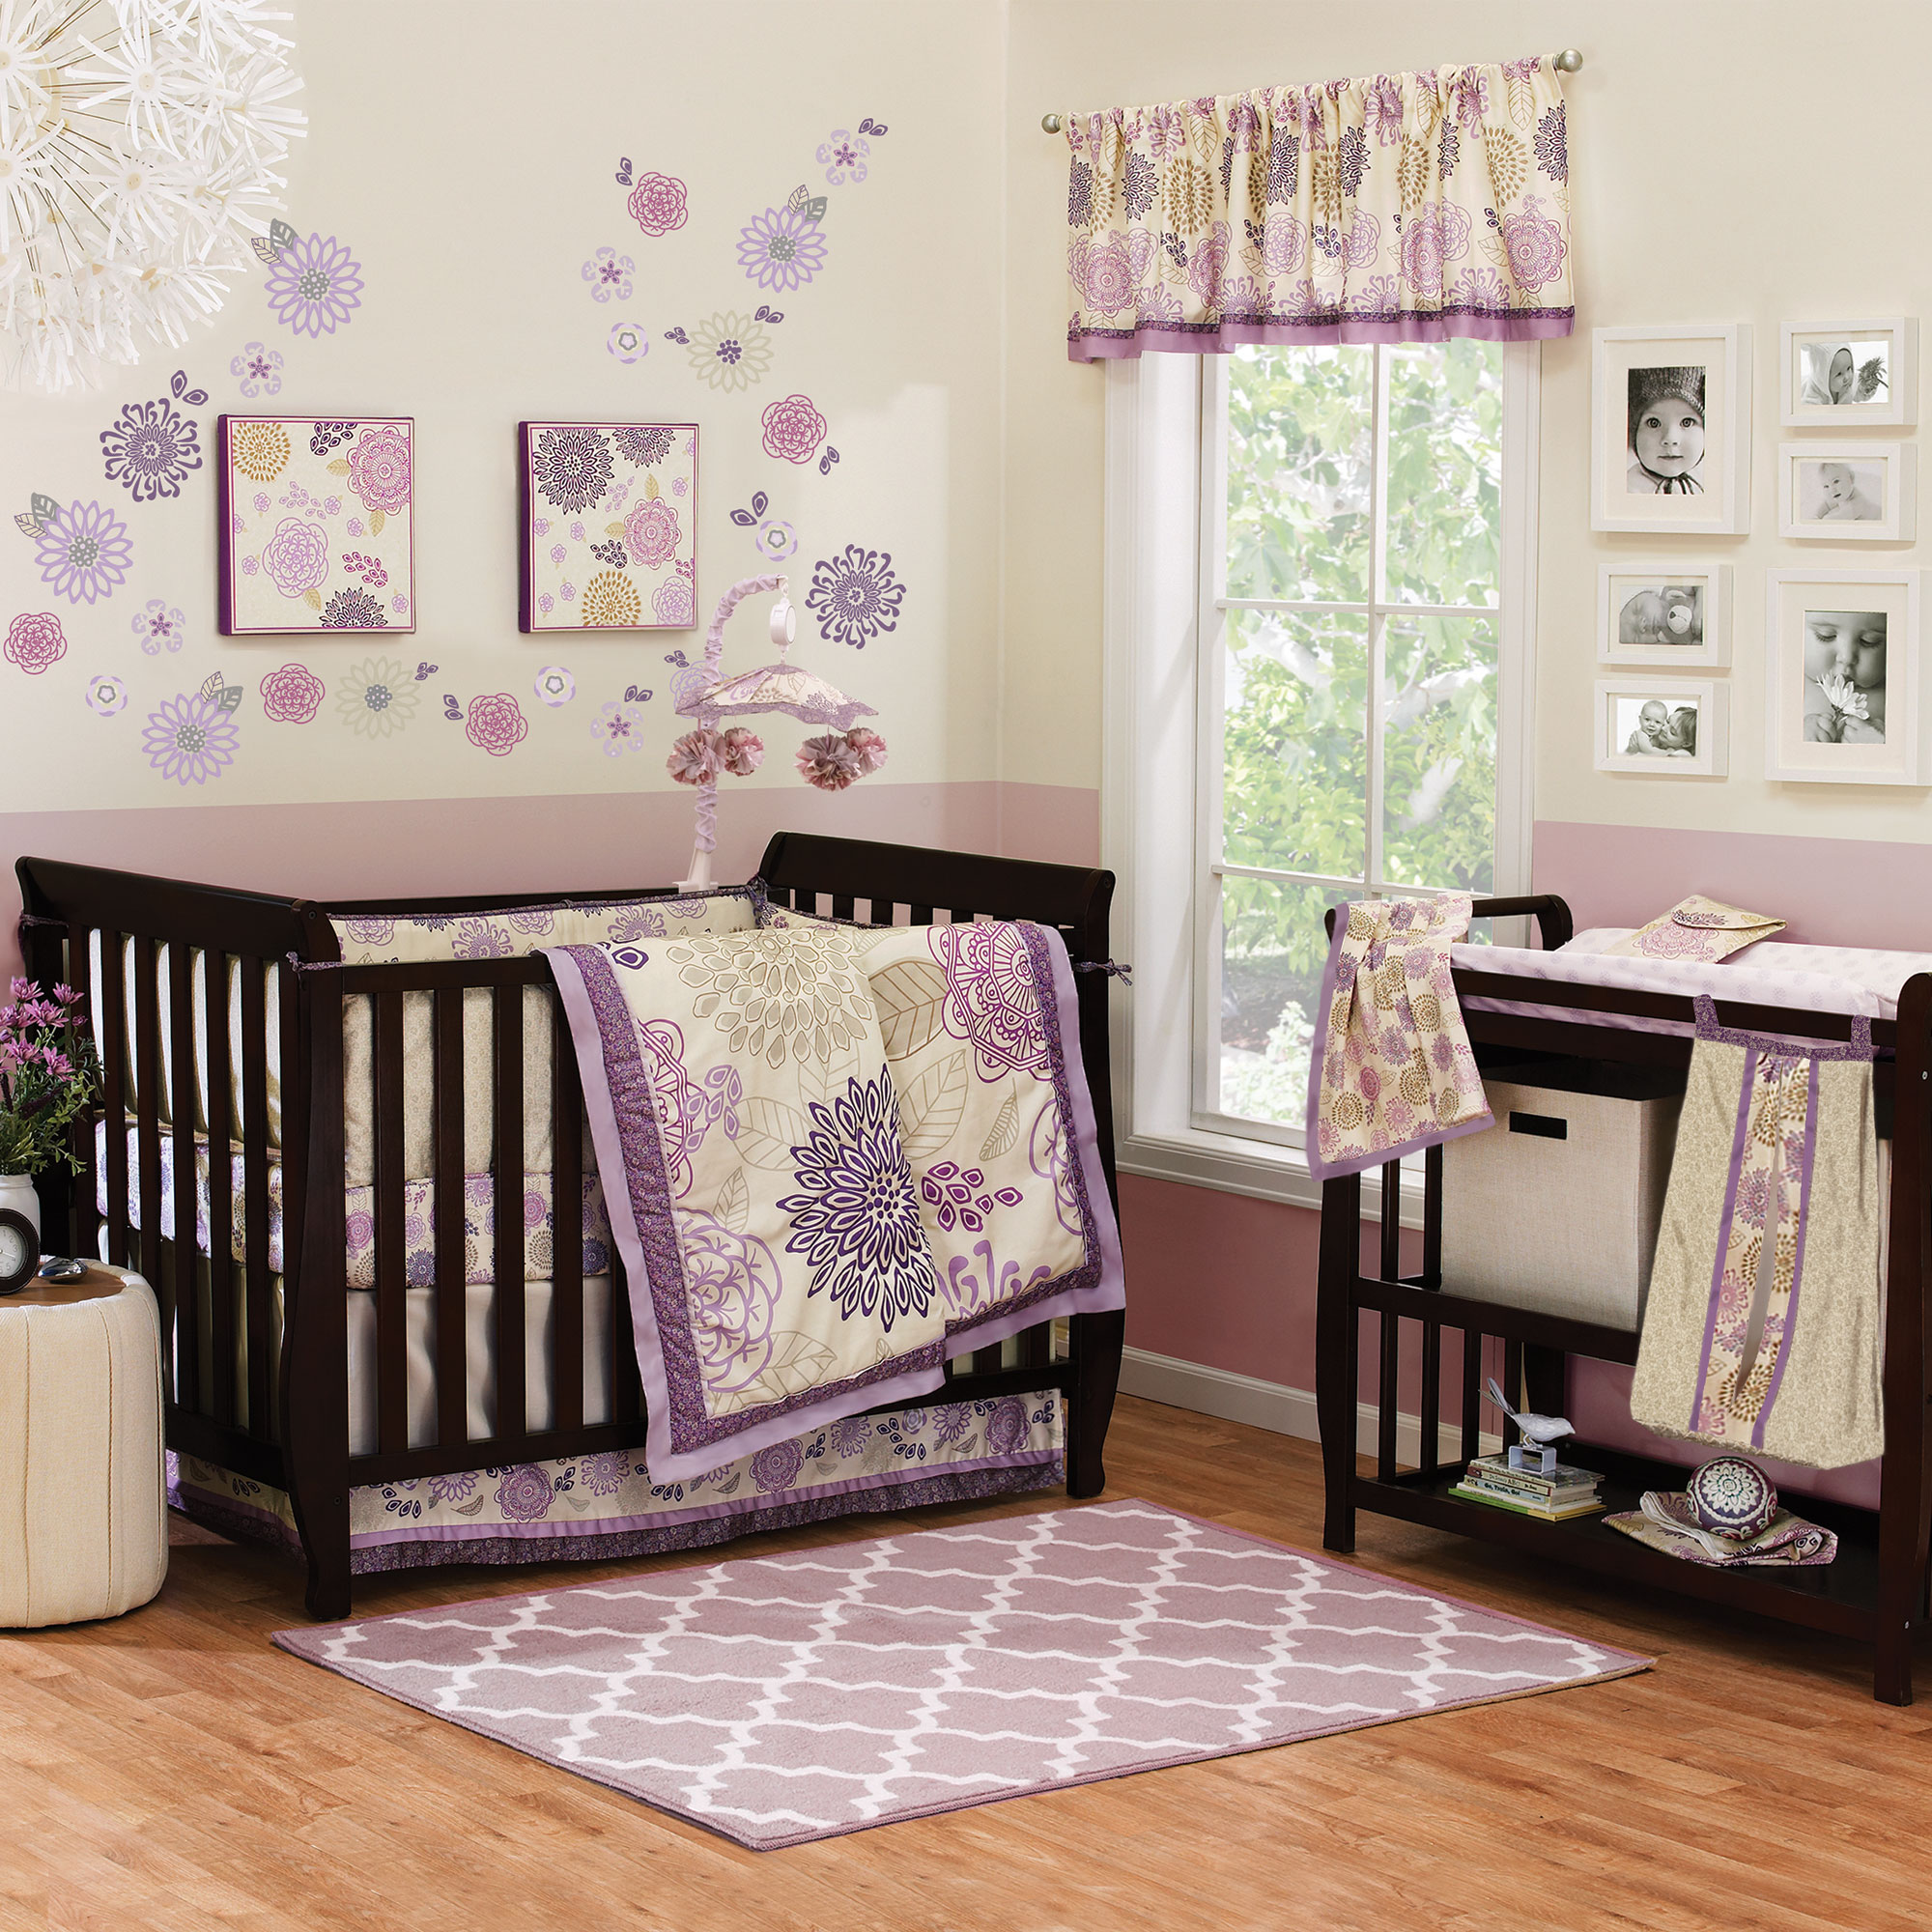 crib add baby product sweet sorbet chevron girl custom to nursery bumperless da bed loading bedding wishlist lottie